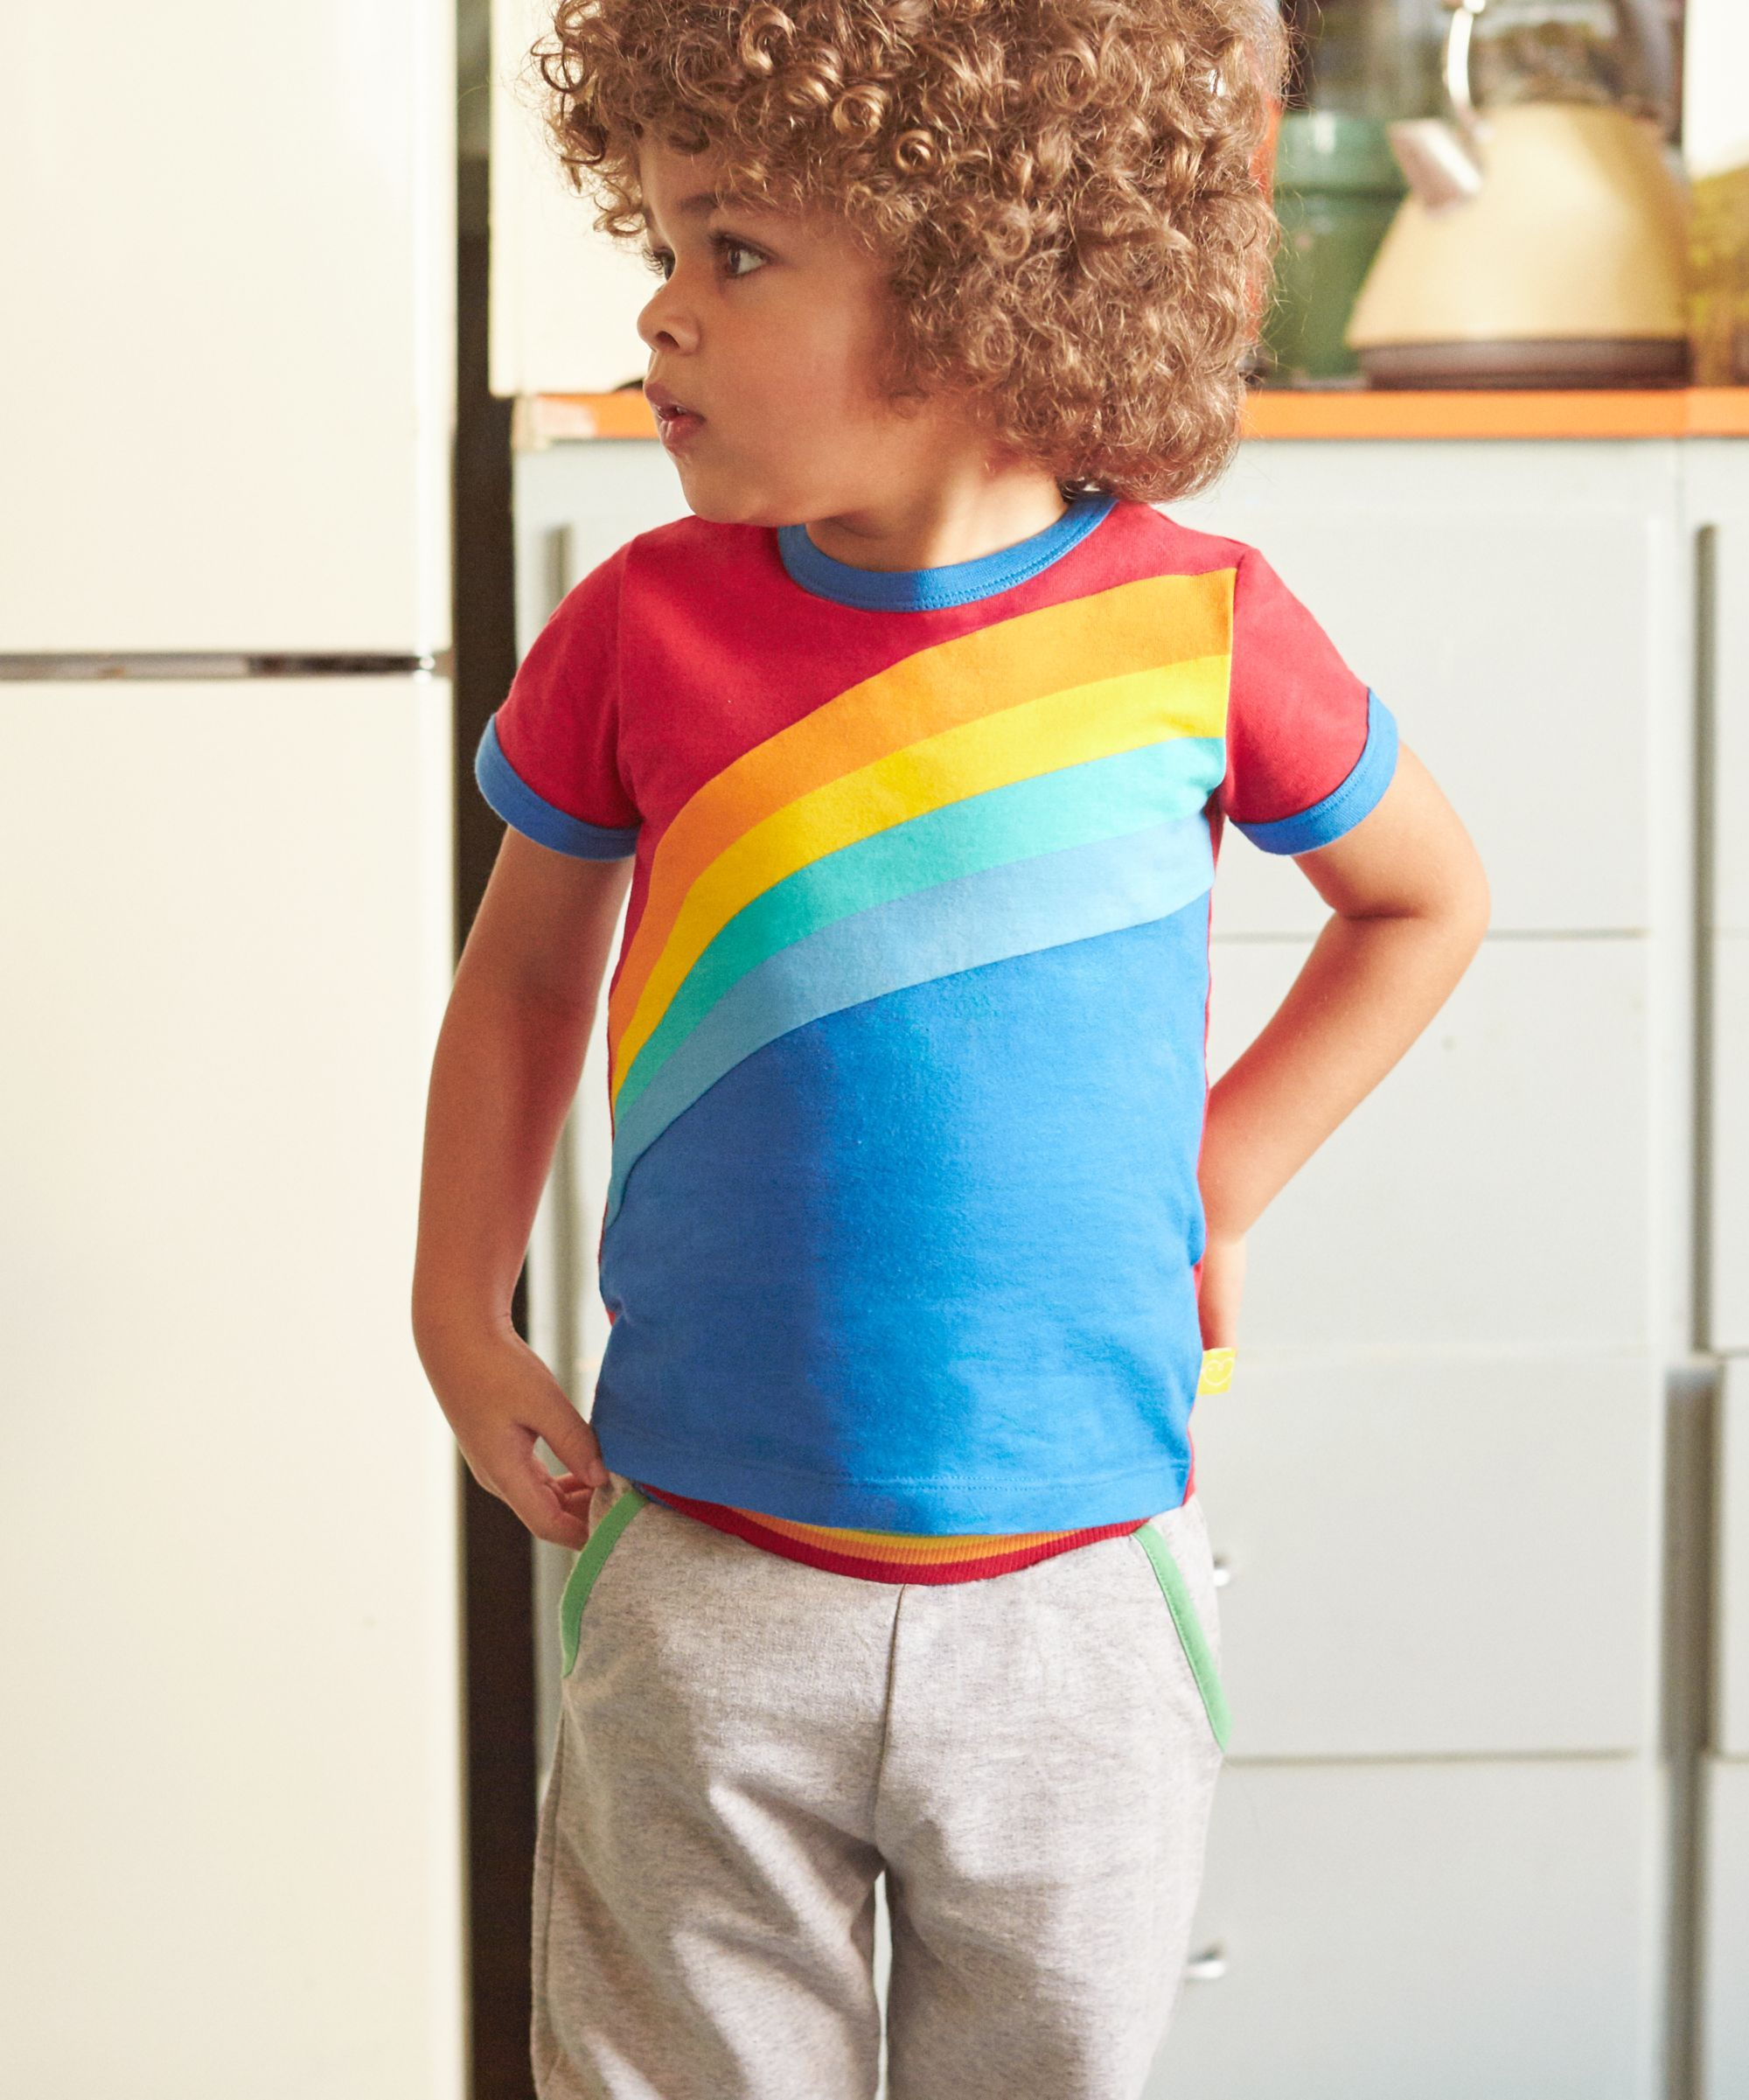 cf222e239 Little Bird by Jools Rainbow T-Shirt | Rainbow clothes | Little bird ...